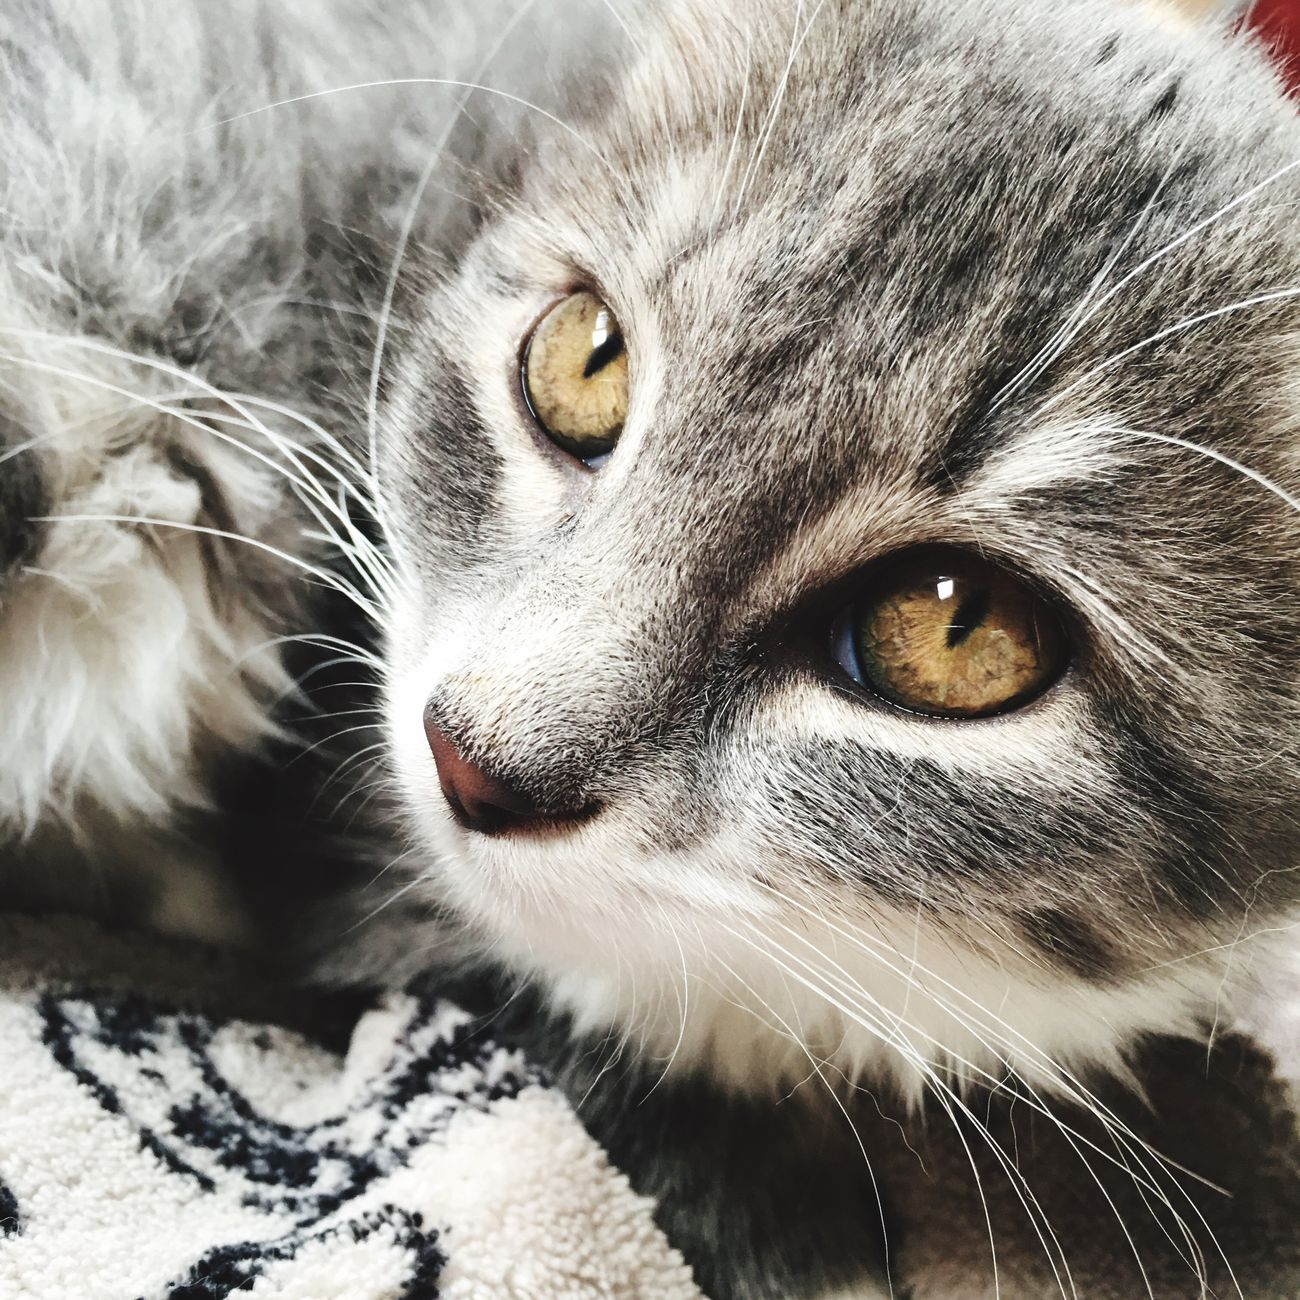 😻 Pets One Animal Animal Themes Feline Cat Babycat Chaton Chat Cute Love Cats Of EyeEm Cute Cats Mycat Chats Cute Pets Animal Cats